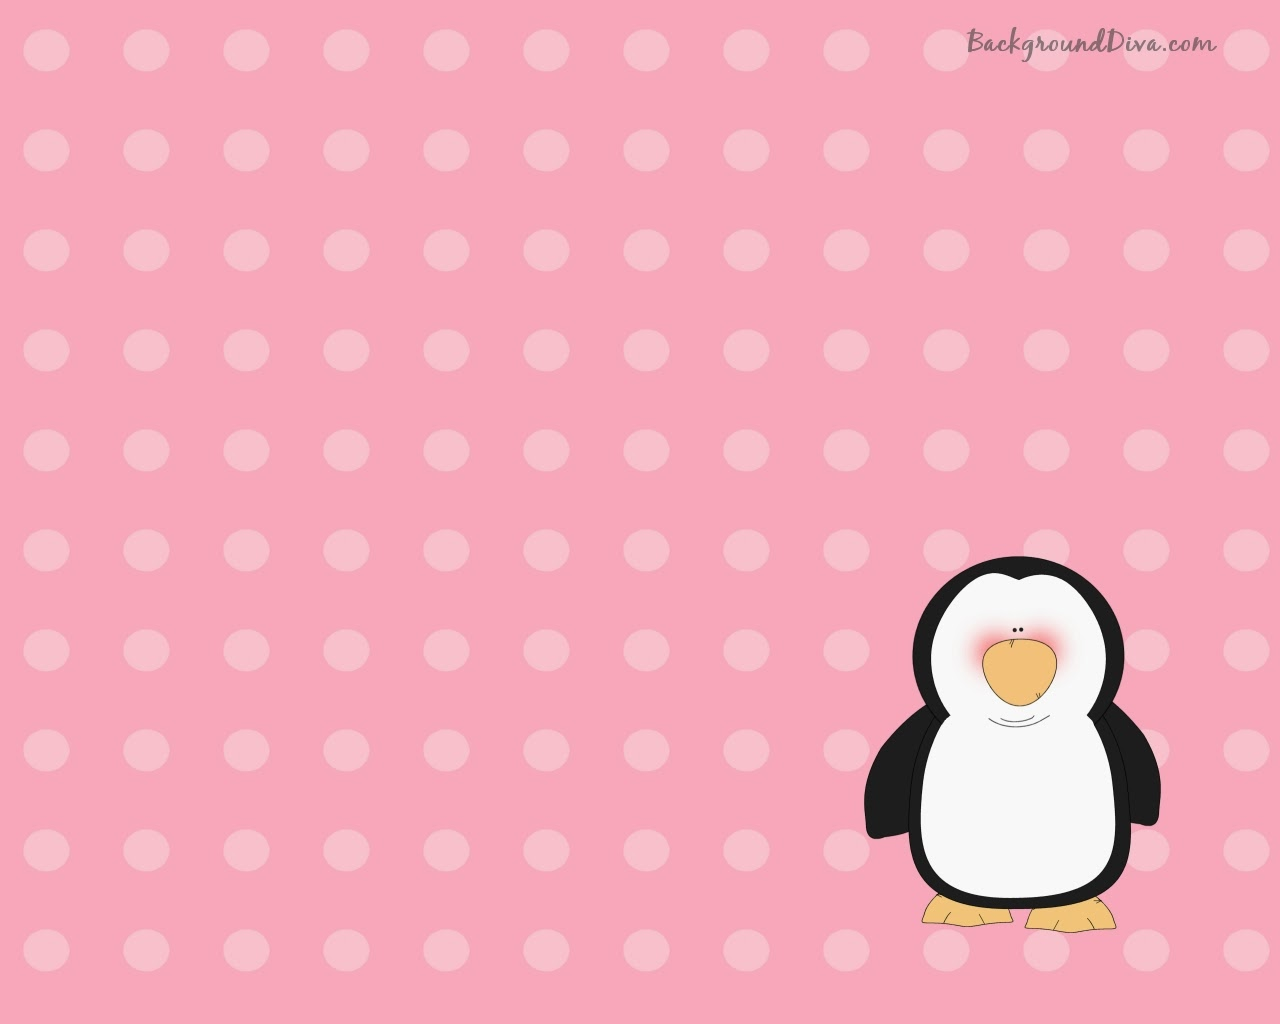 Wallpapers Bouglle Gallery Cute Wallpapers for Desktop 1280x1024